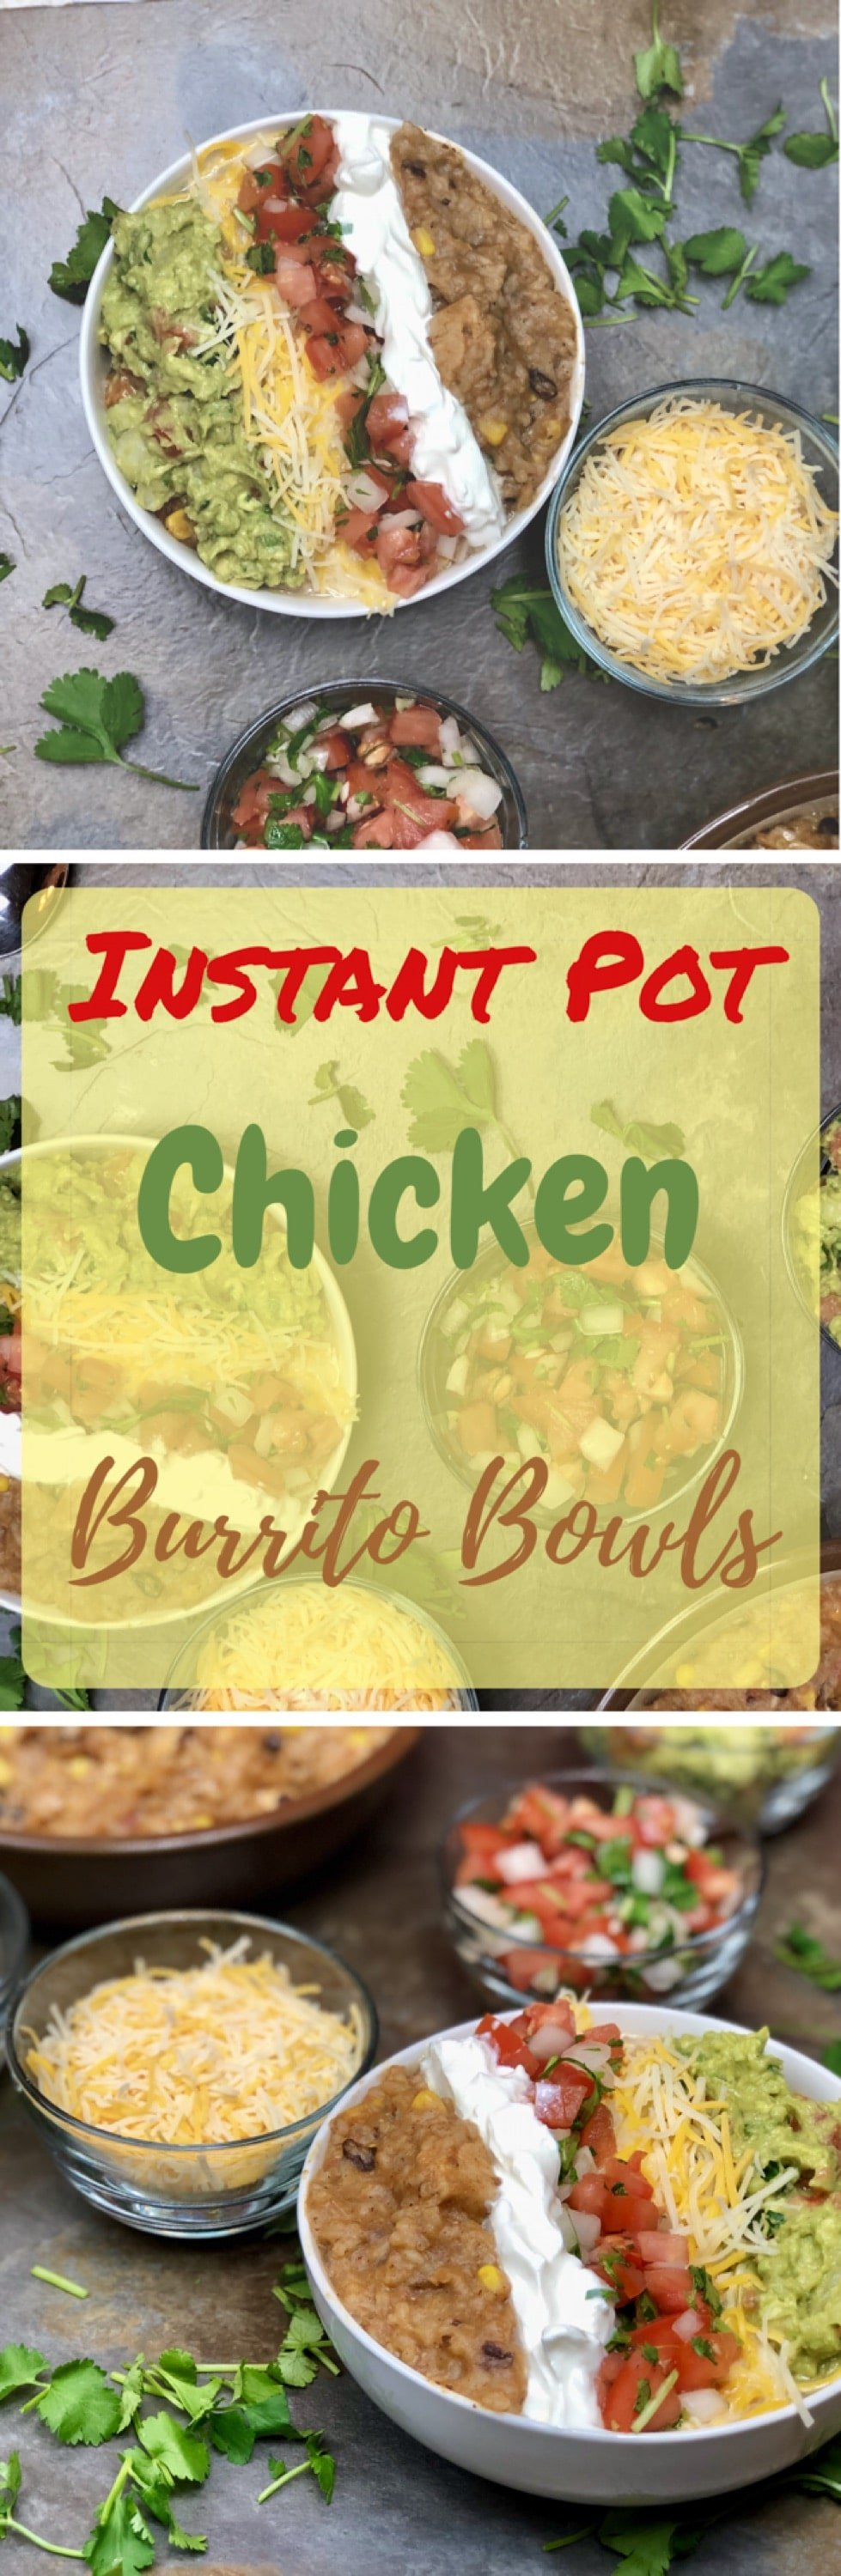 Today I am going to liven up your Taco Tuesday with this amazing Instant Pot Chicken Burrito Bowl. All the hearty goodness of a traditional burrito, but we eat it with a spoon!